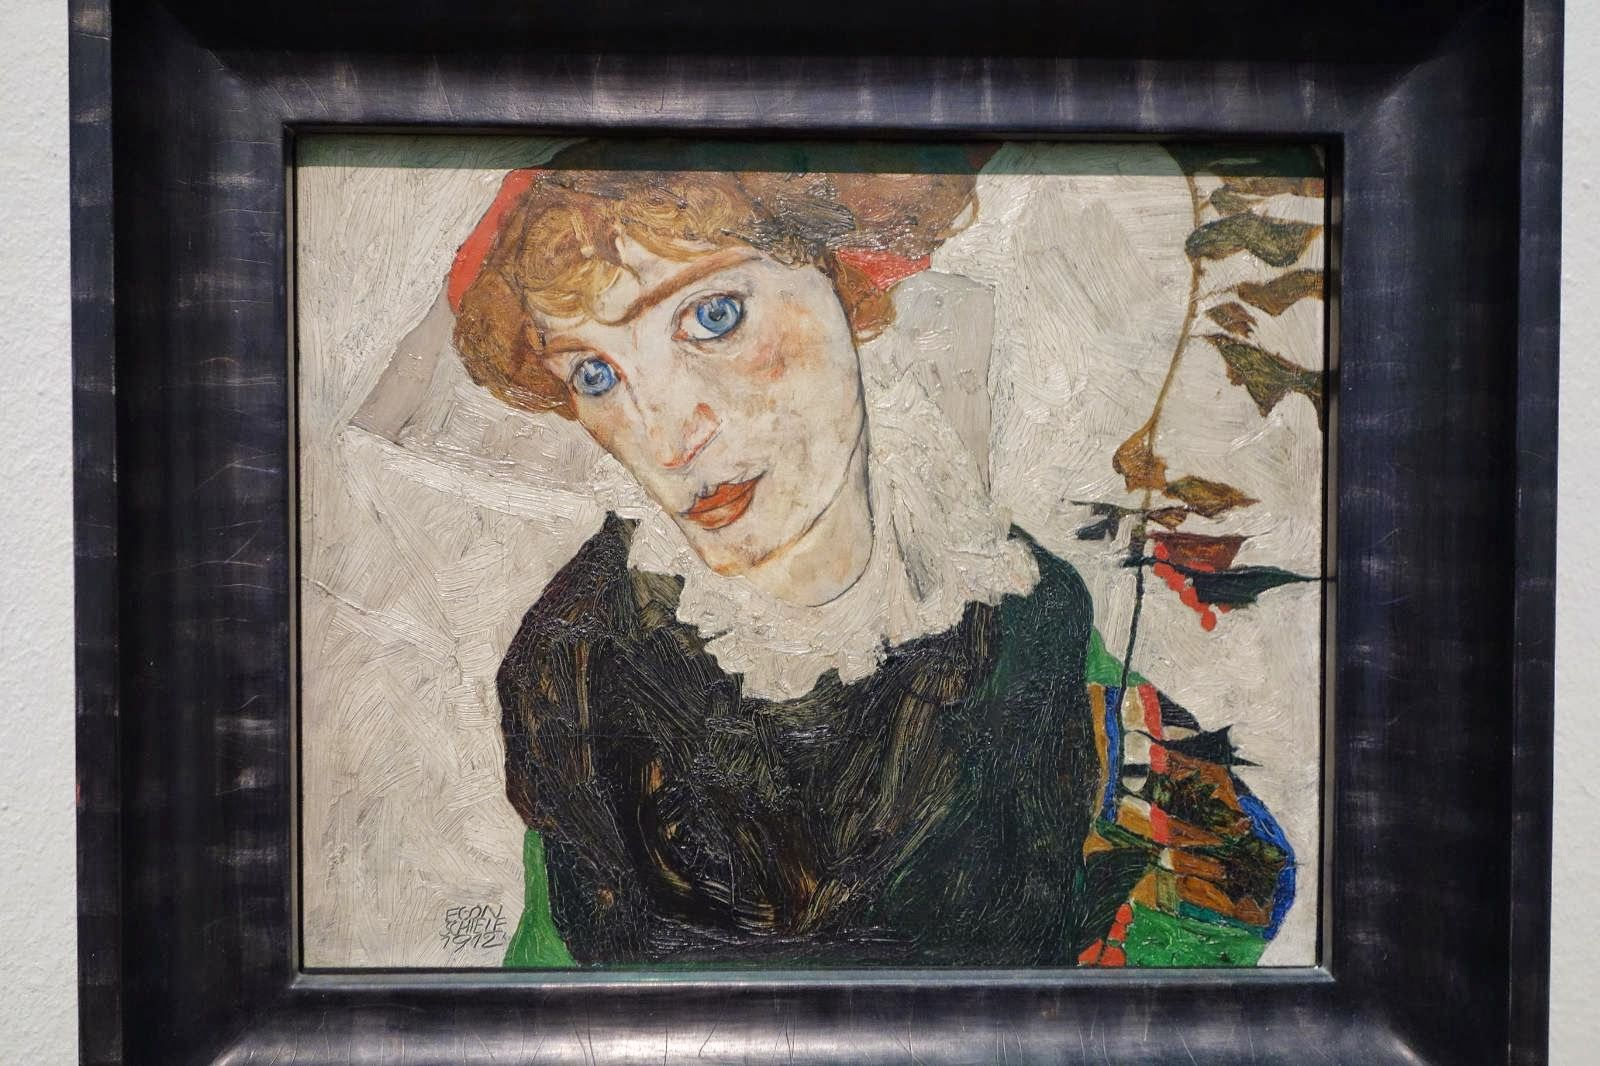 Egon Schiele - Portrait of Wally Neuzil (1a)